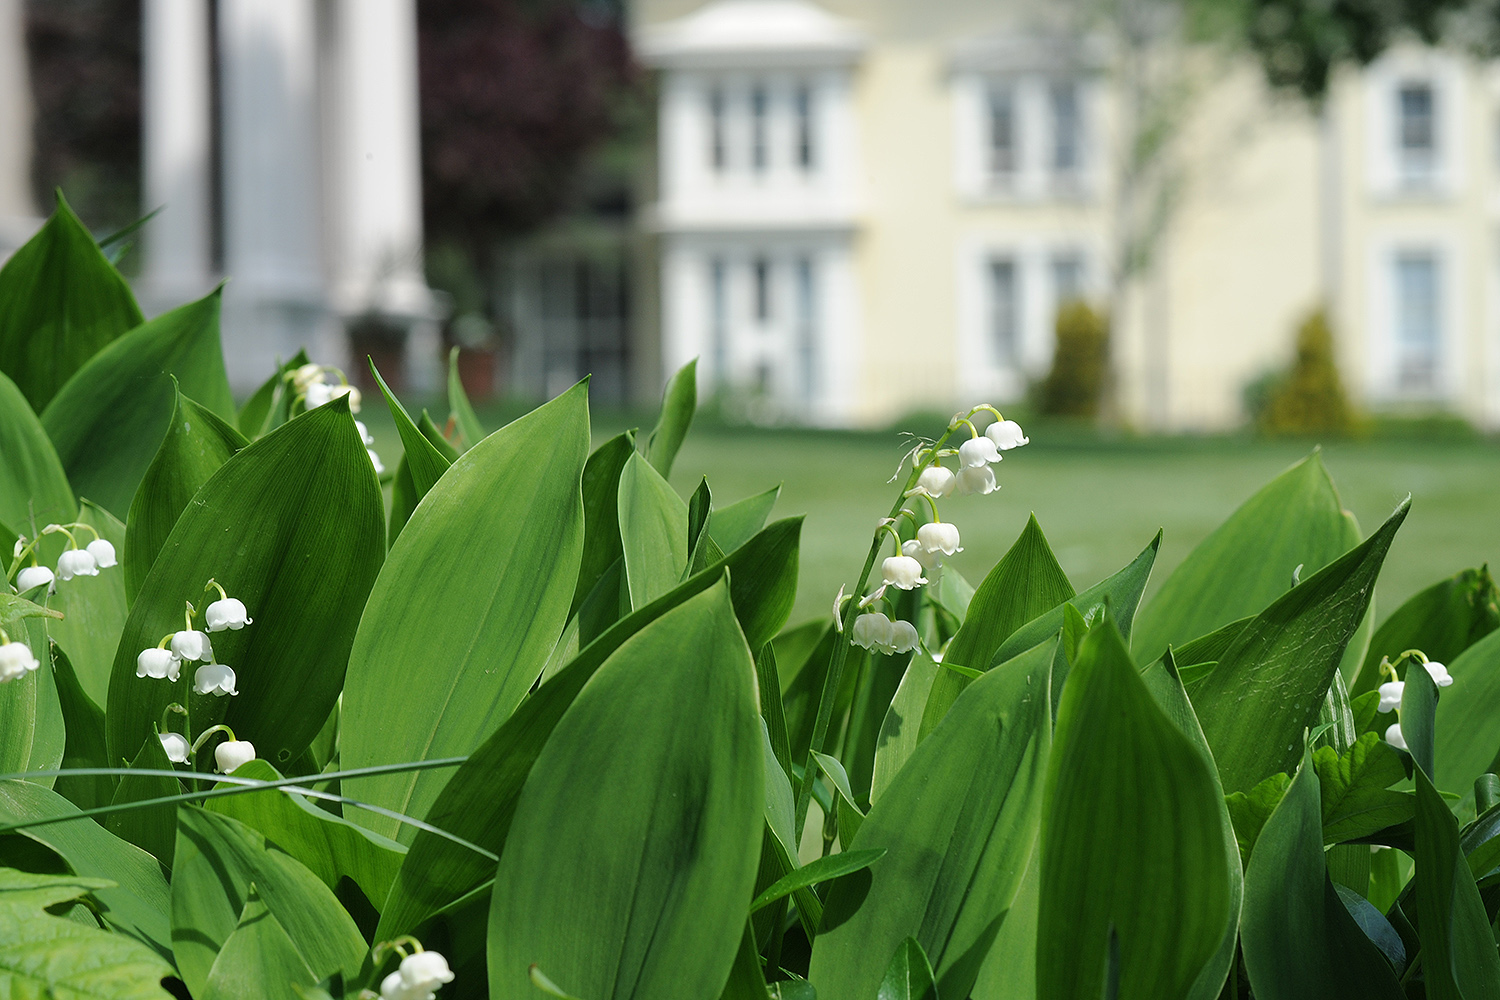 Lily of the Valley grows near the President's House. Pictured in the background is the Archeology Department.